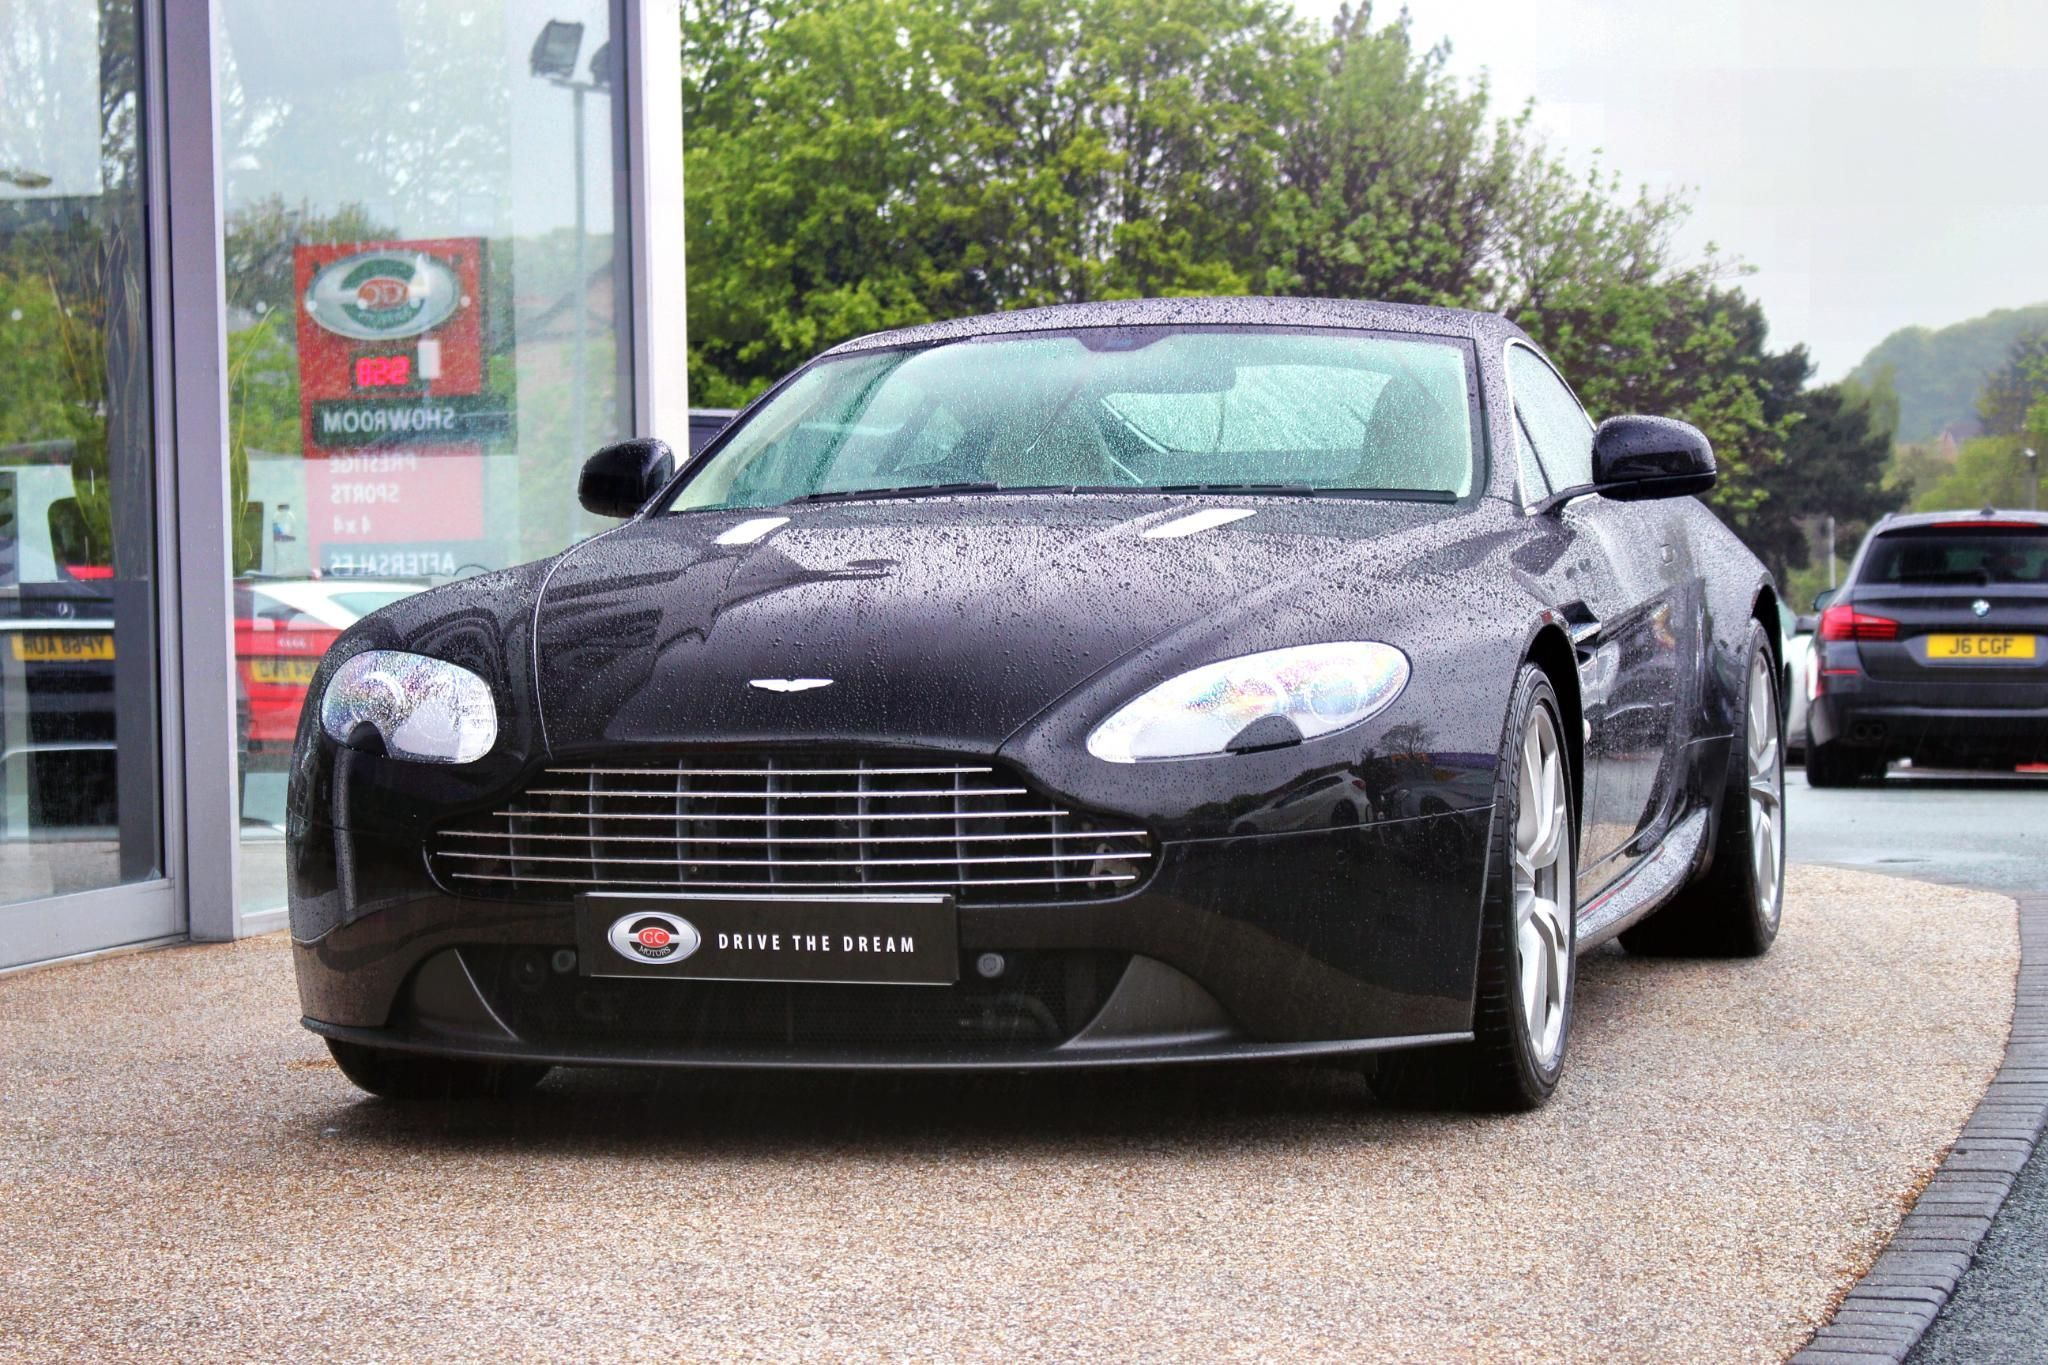 2008 aston Martin Vantage Best Of aston Martin Used Cars for Sale In Leeds On Auto Trader Uk